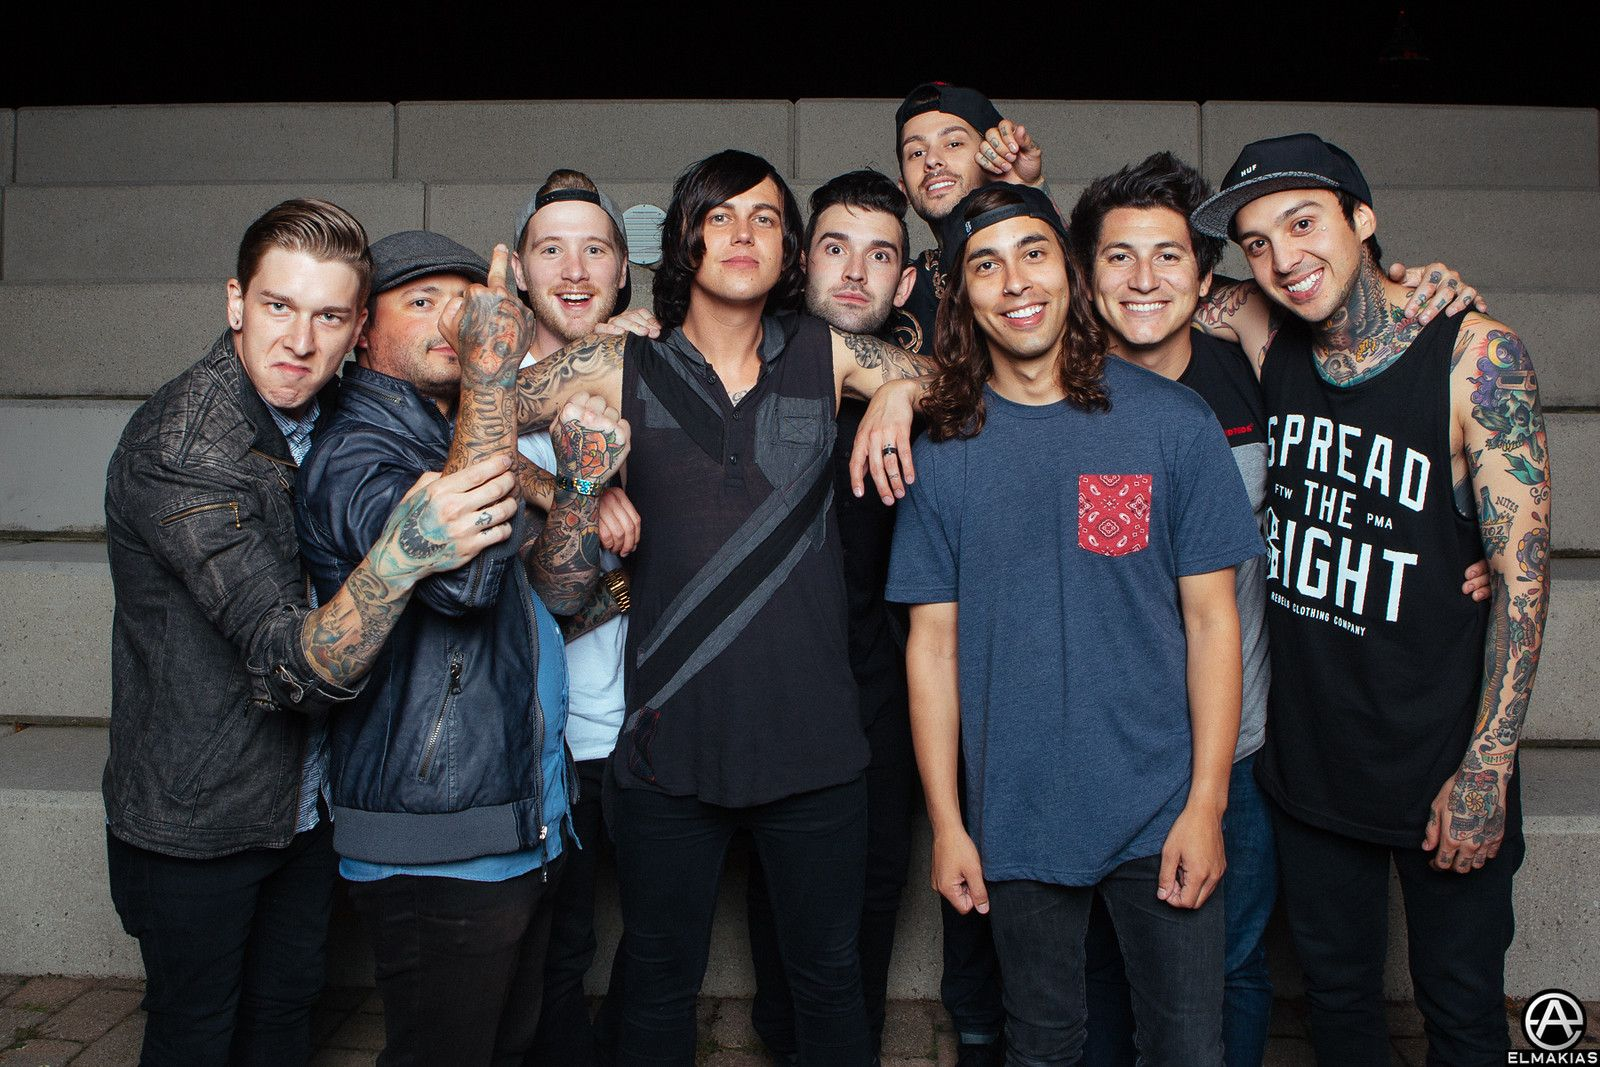 Pierce The Veil And Sleeping With Sirens Tour Photo Shoot